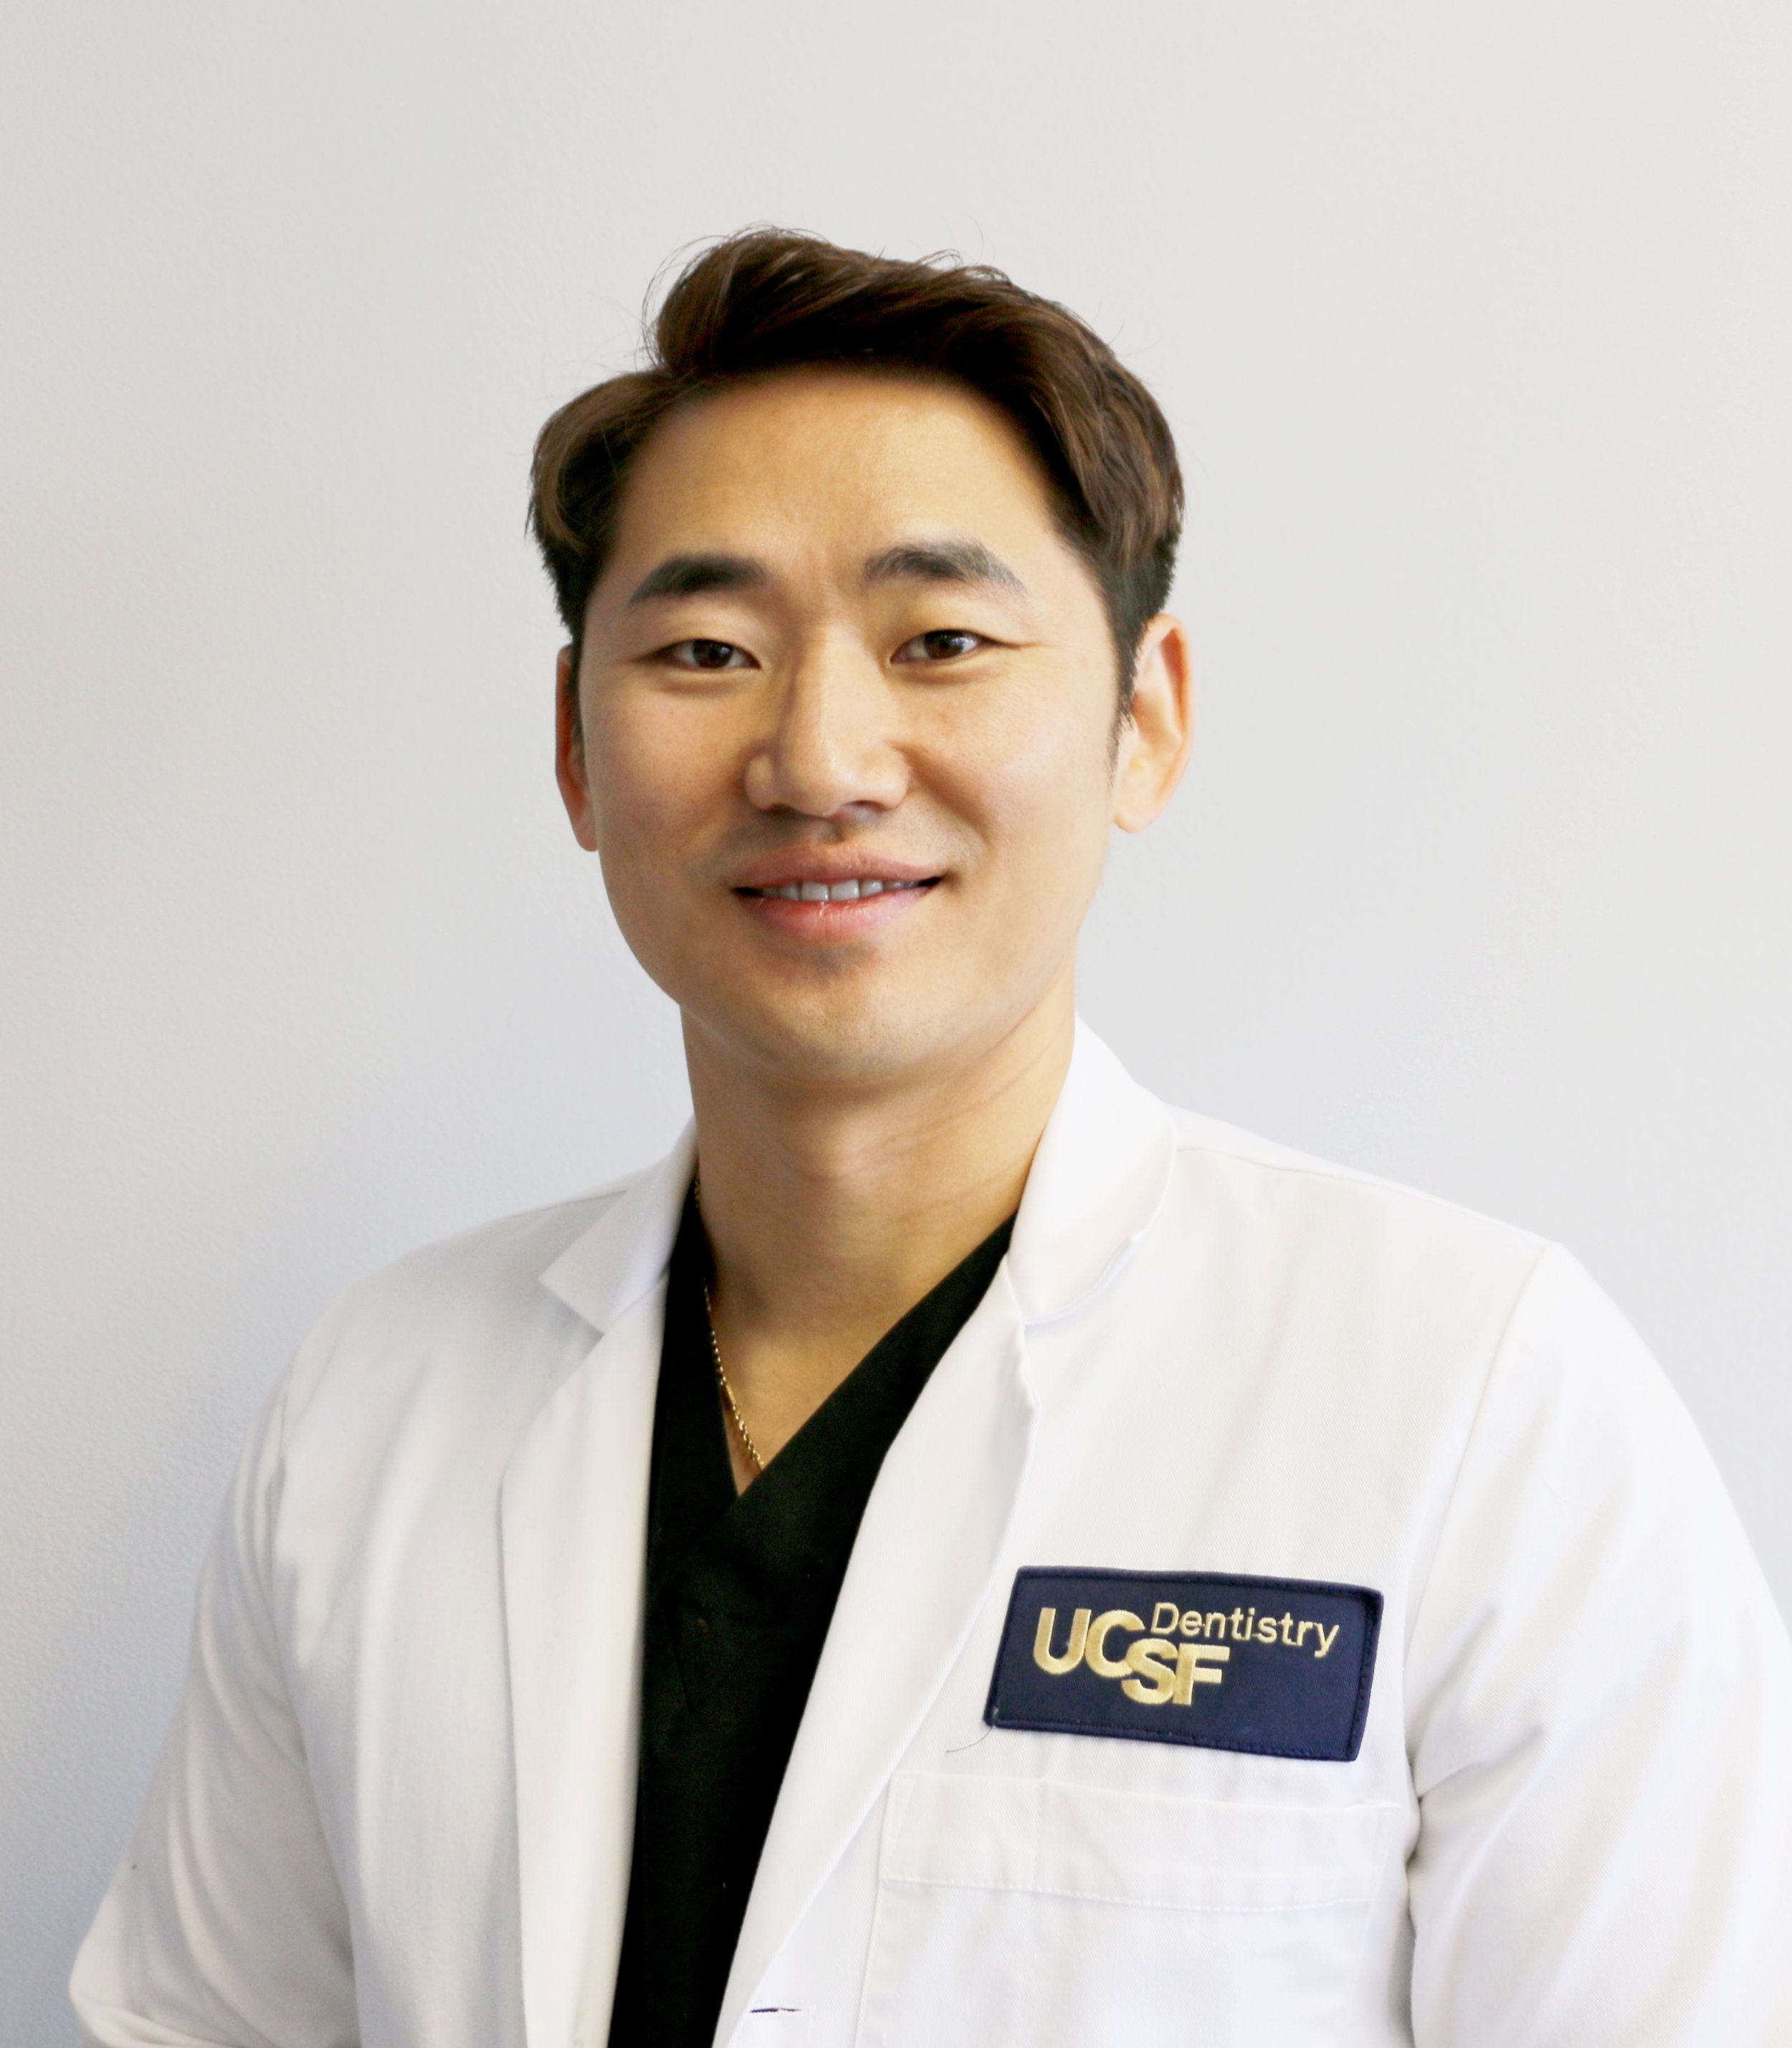 Dr. MoonD.D.S, - Dr. Moon is a top rated dentist in Palatine, IL and is committed to fix any of your dental concerns.